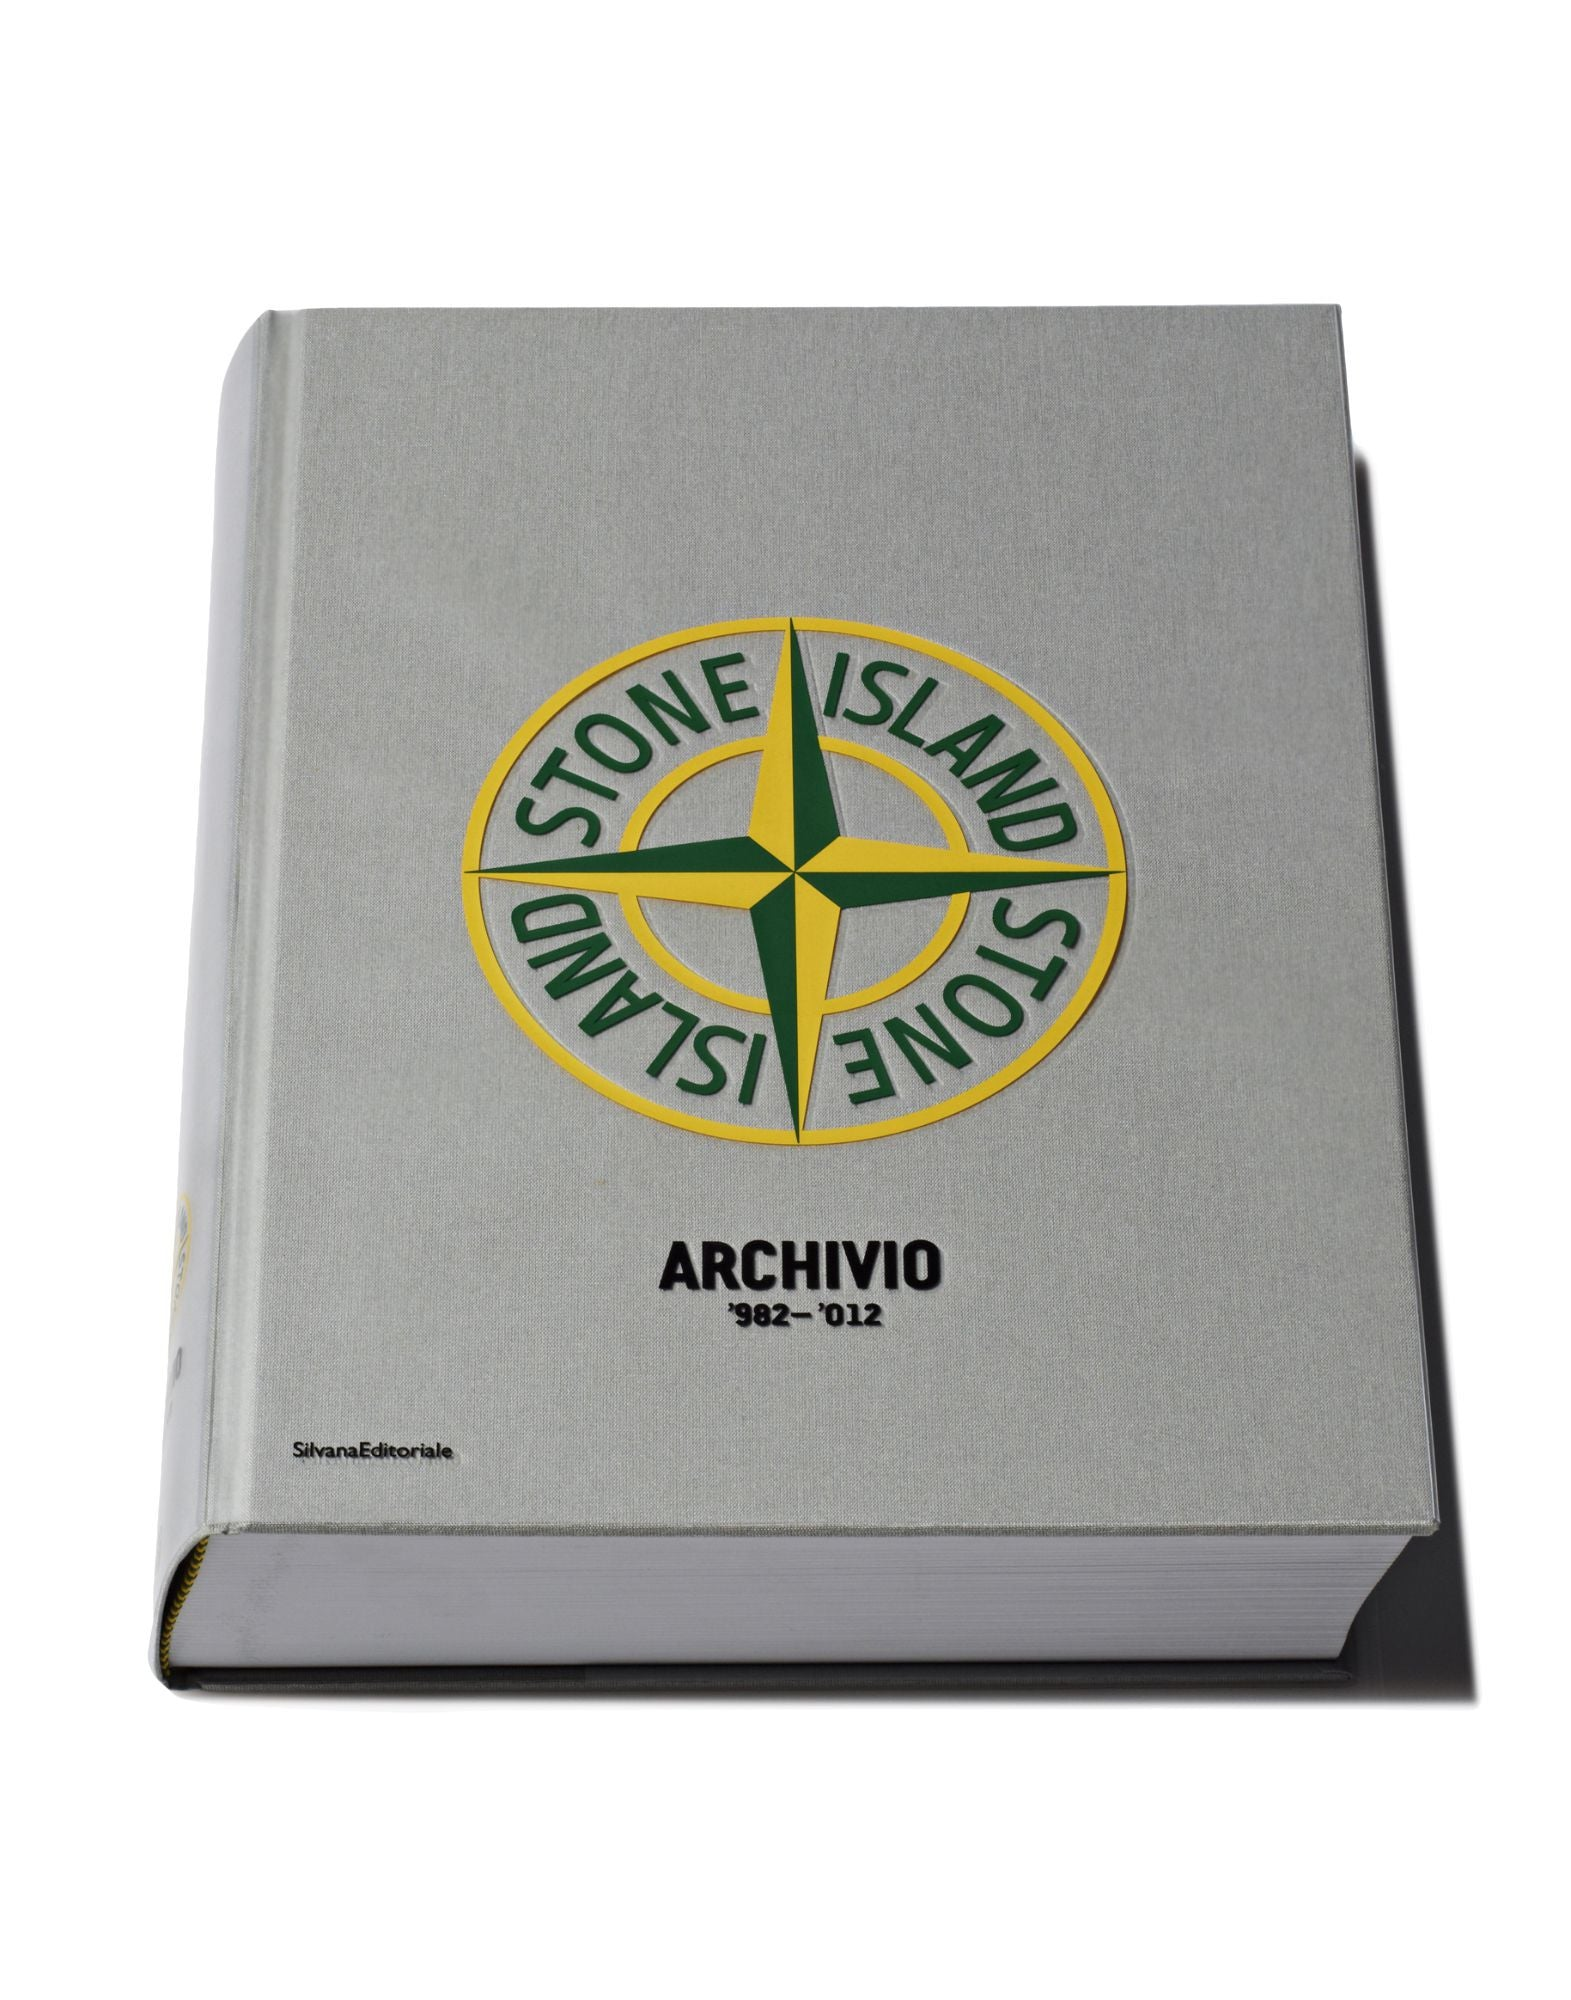 Archivio 30 years of Stone Island in Grey